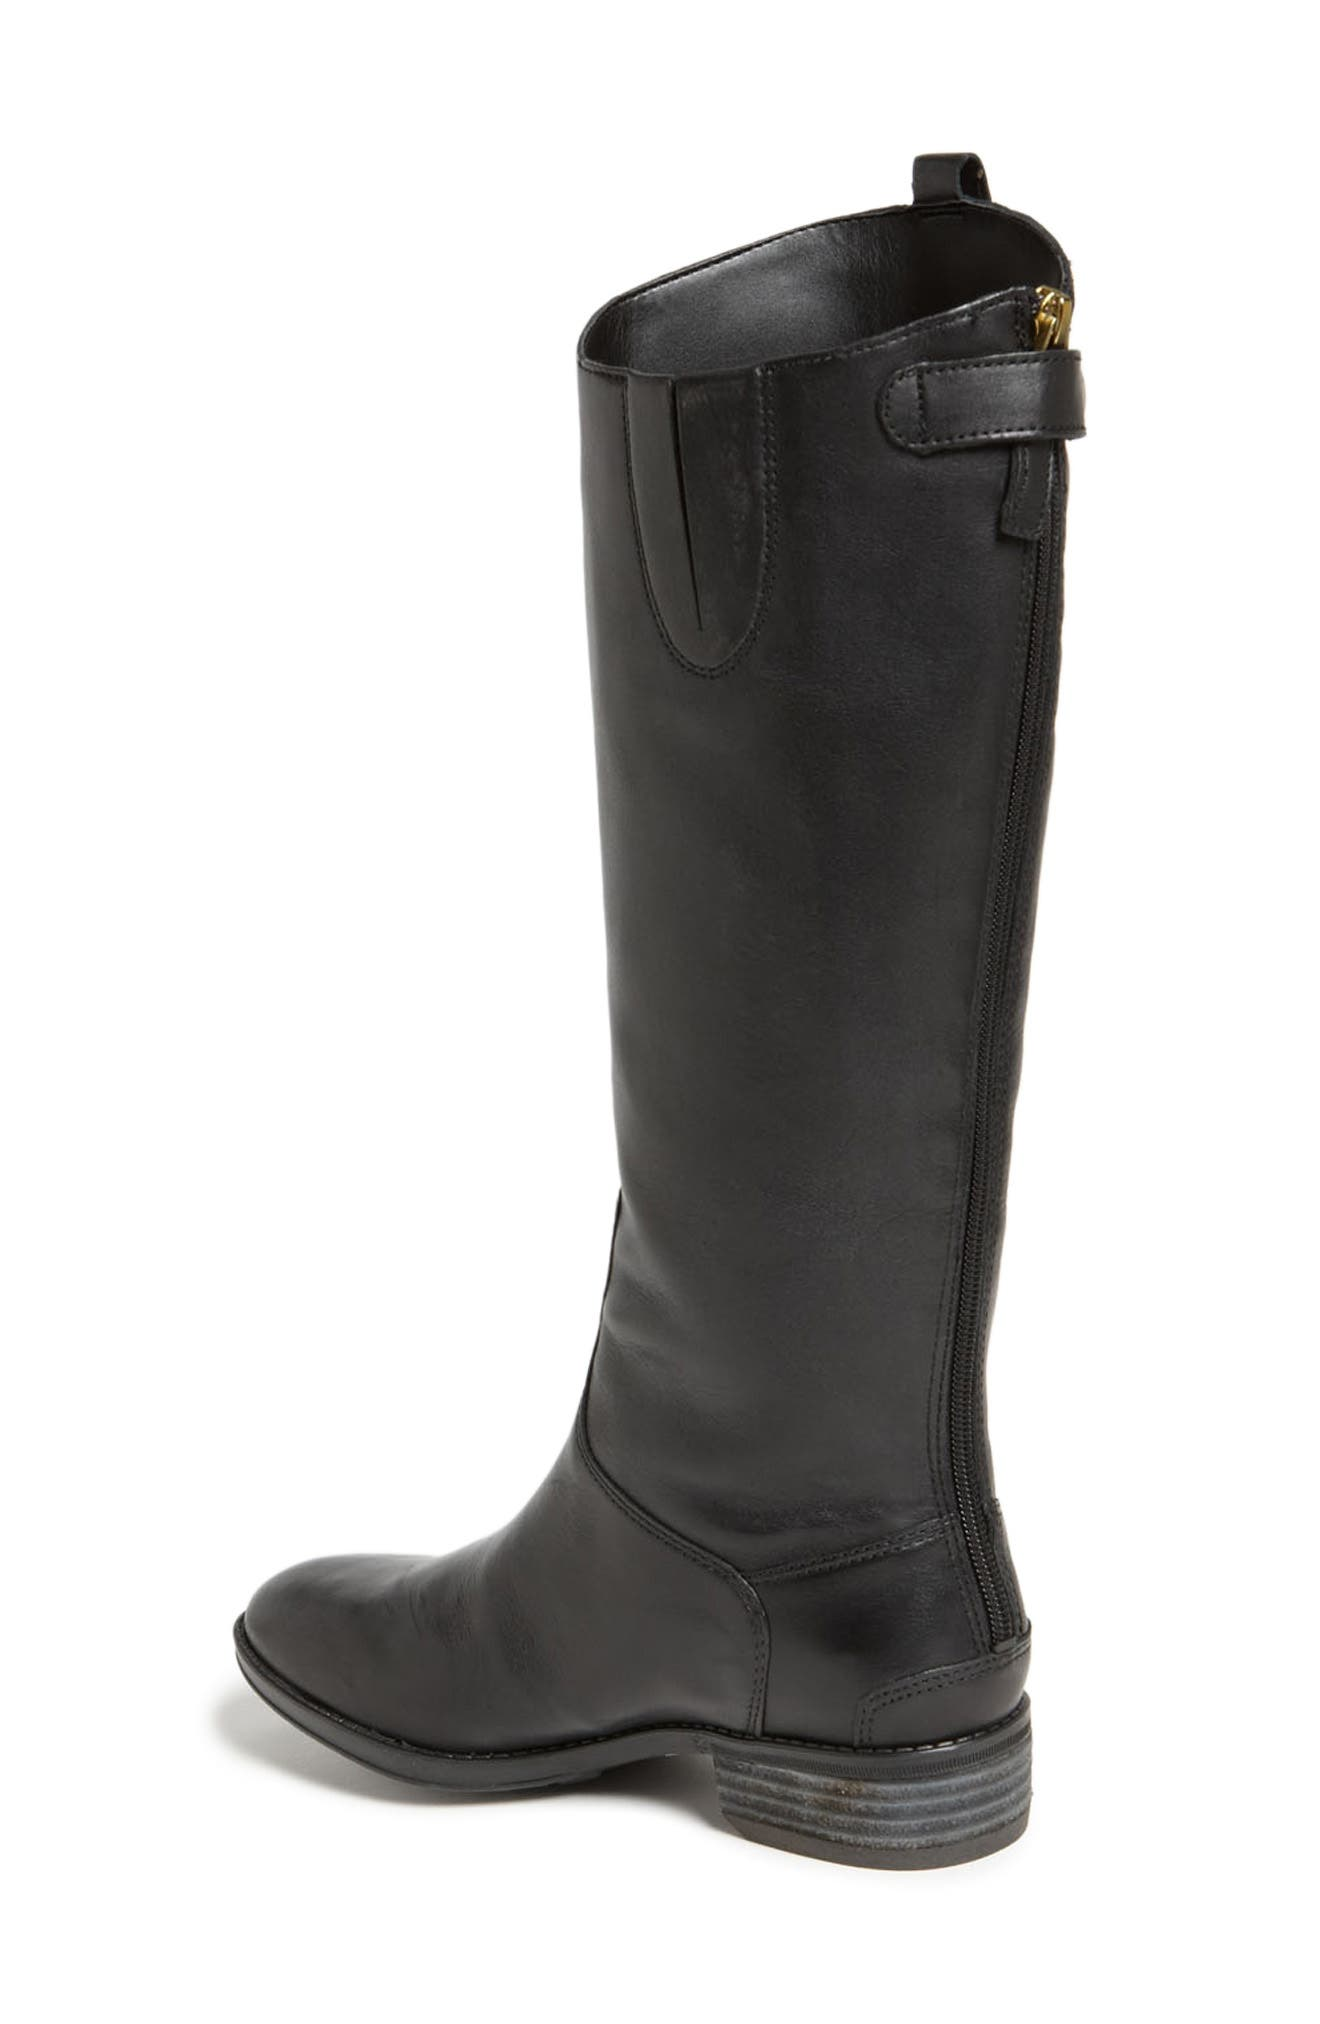 96ab53c6bd1e Knee-High   Tall Boots for Women